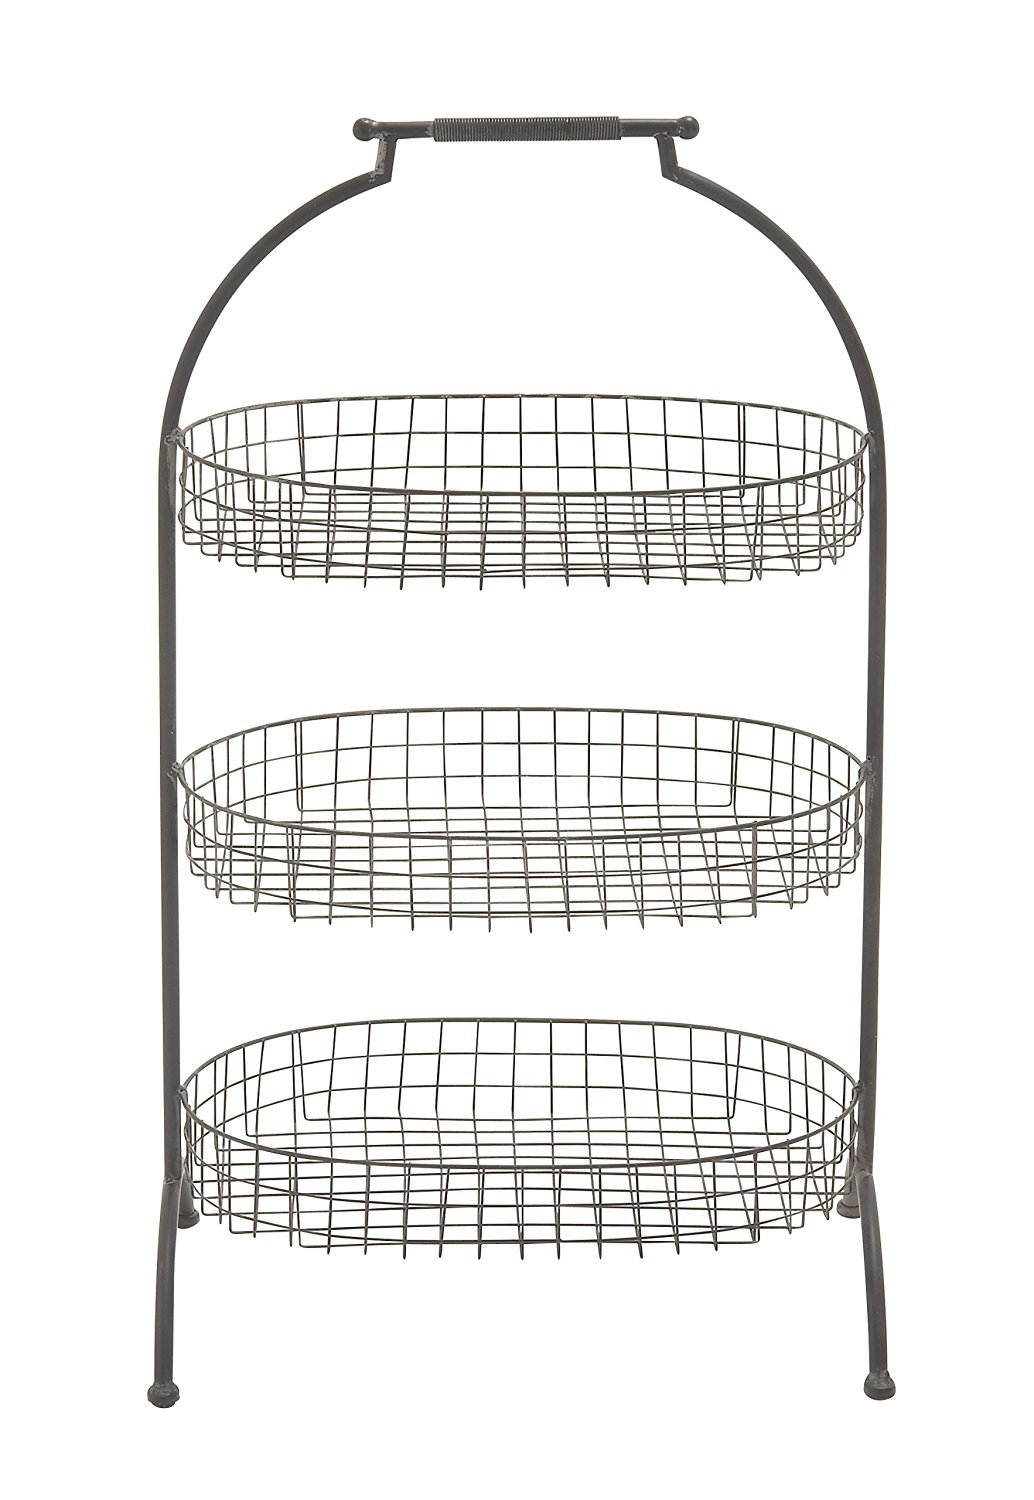 Plutus Brands Attractive Styled Metal Basket 3 Tier Tray